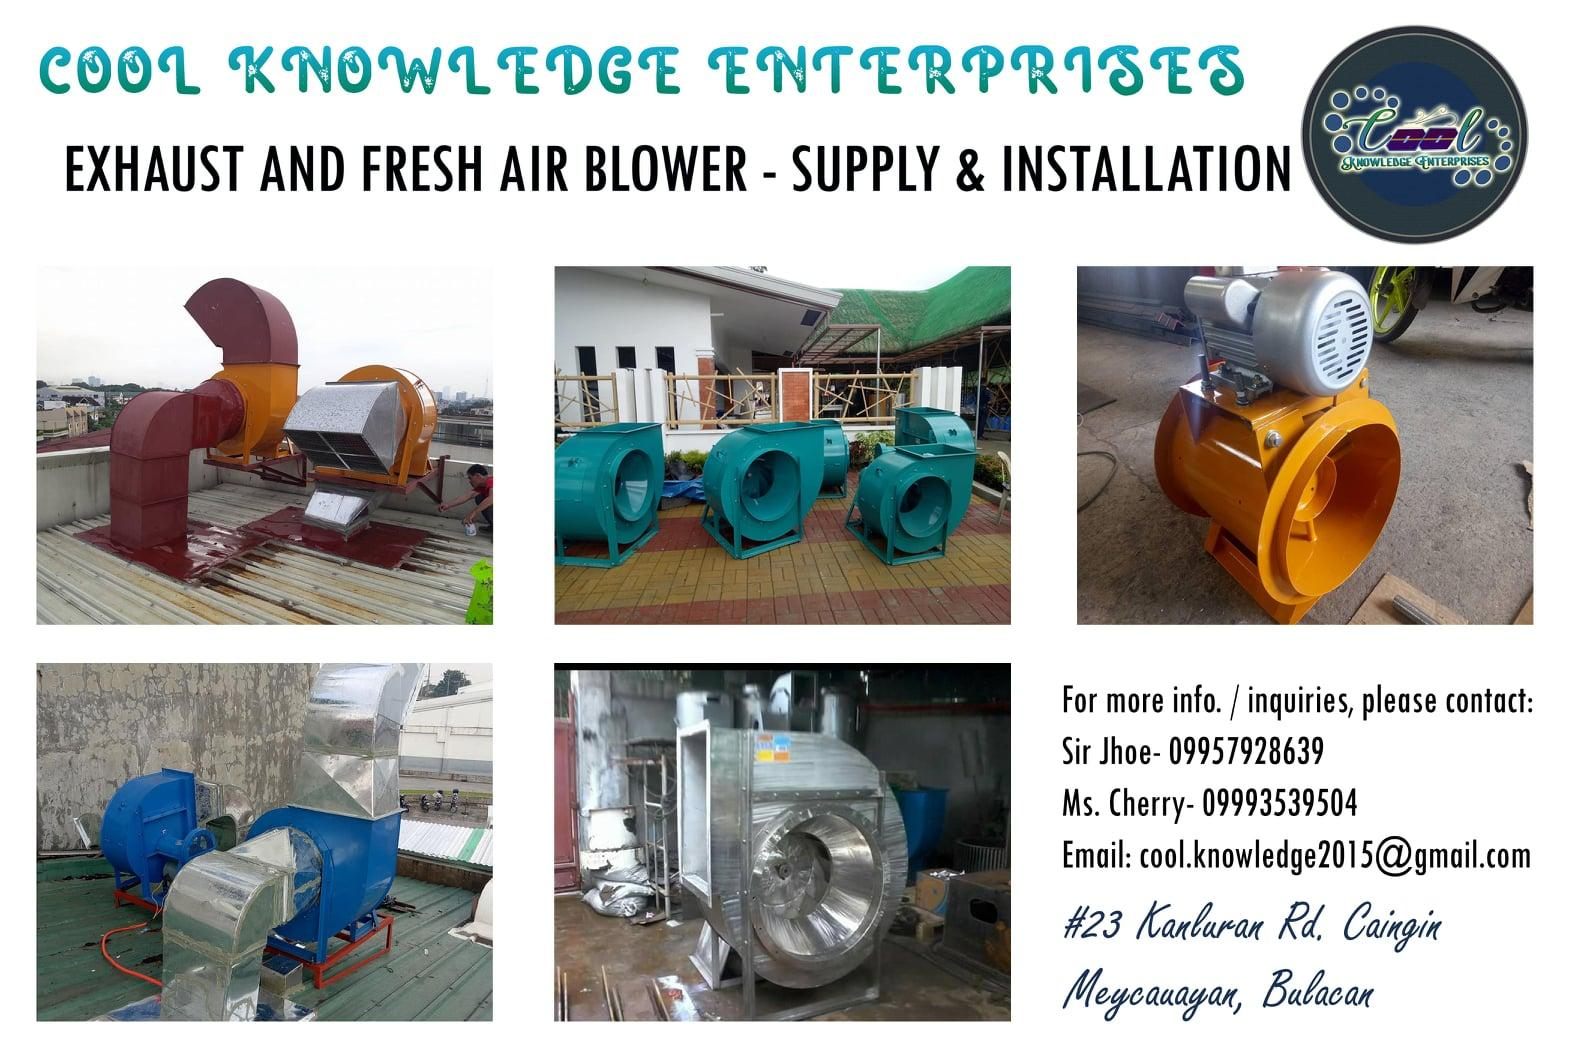 Exhaust Motor / Fresh Air Blower - Supply and Installation